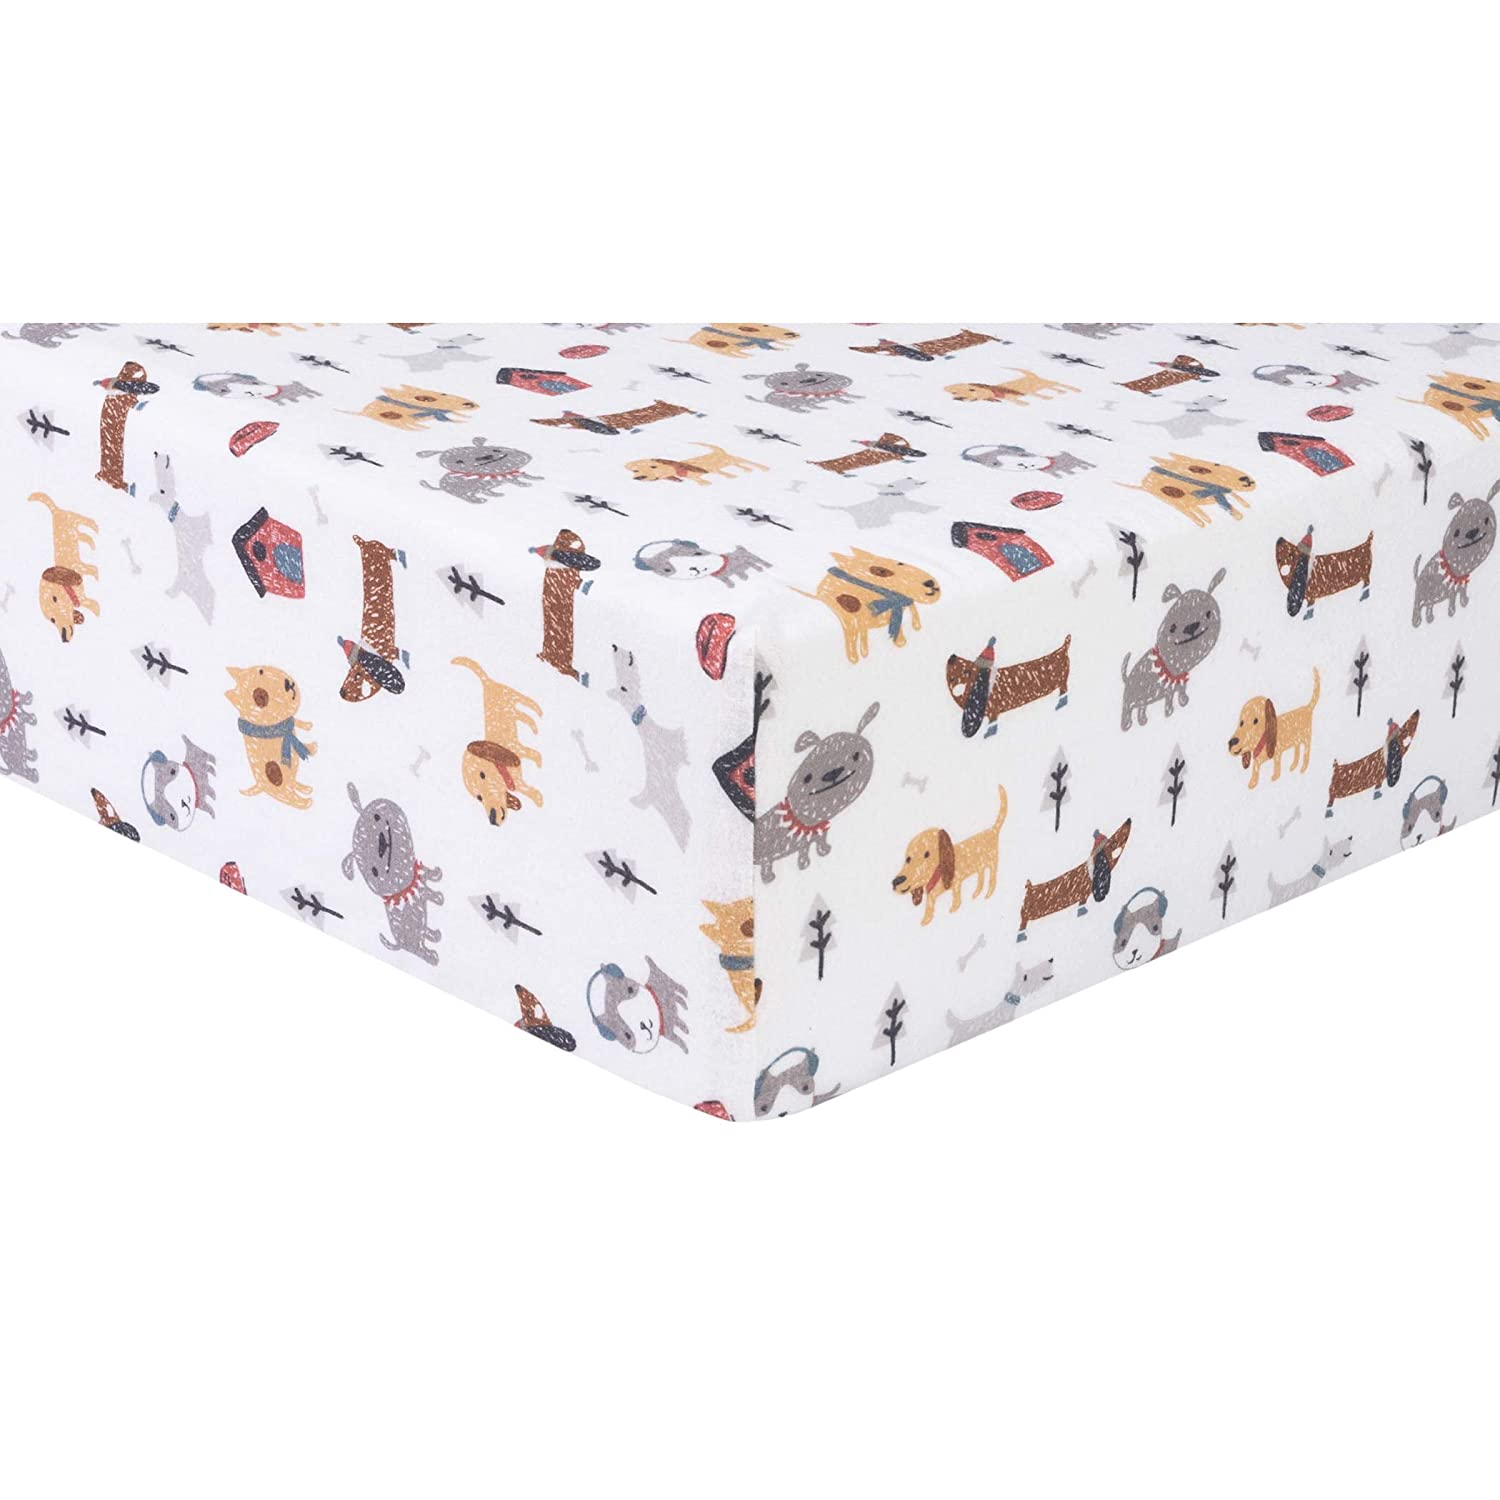 Trend Lab Dog Park Flannel Fitted Crib Sheet (103763)